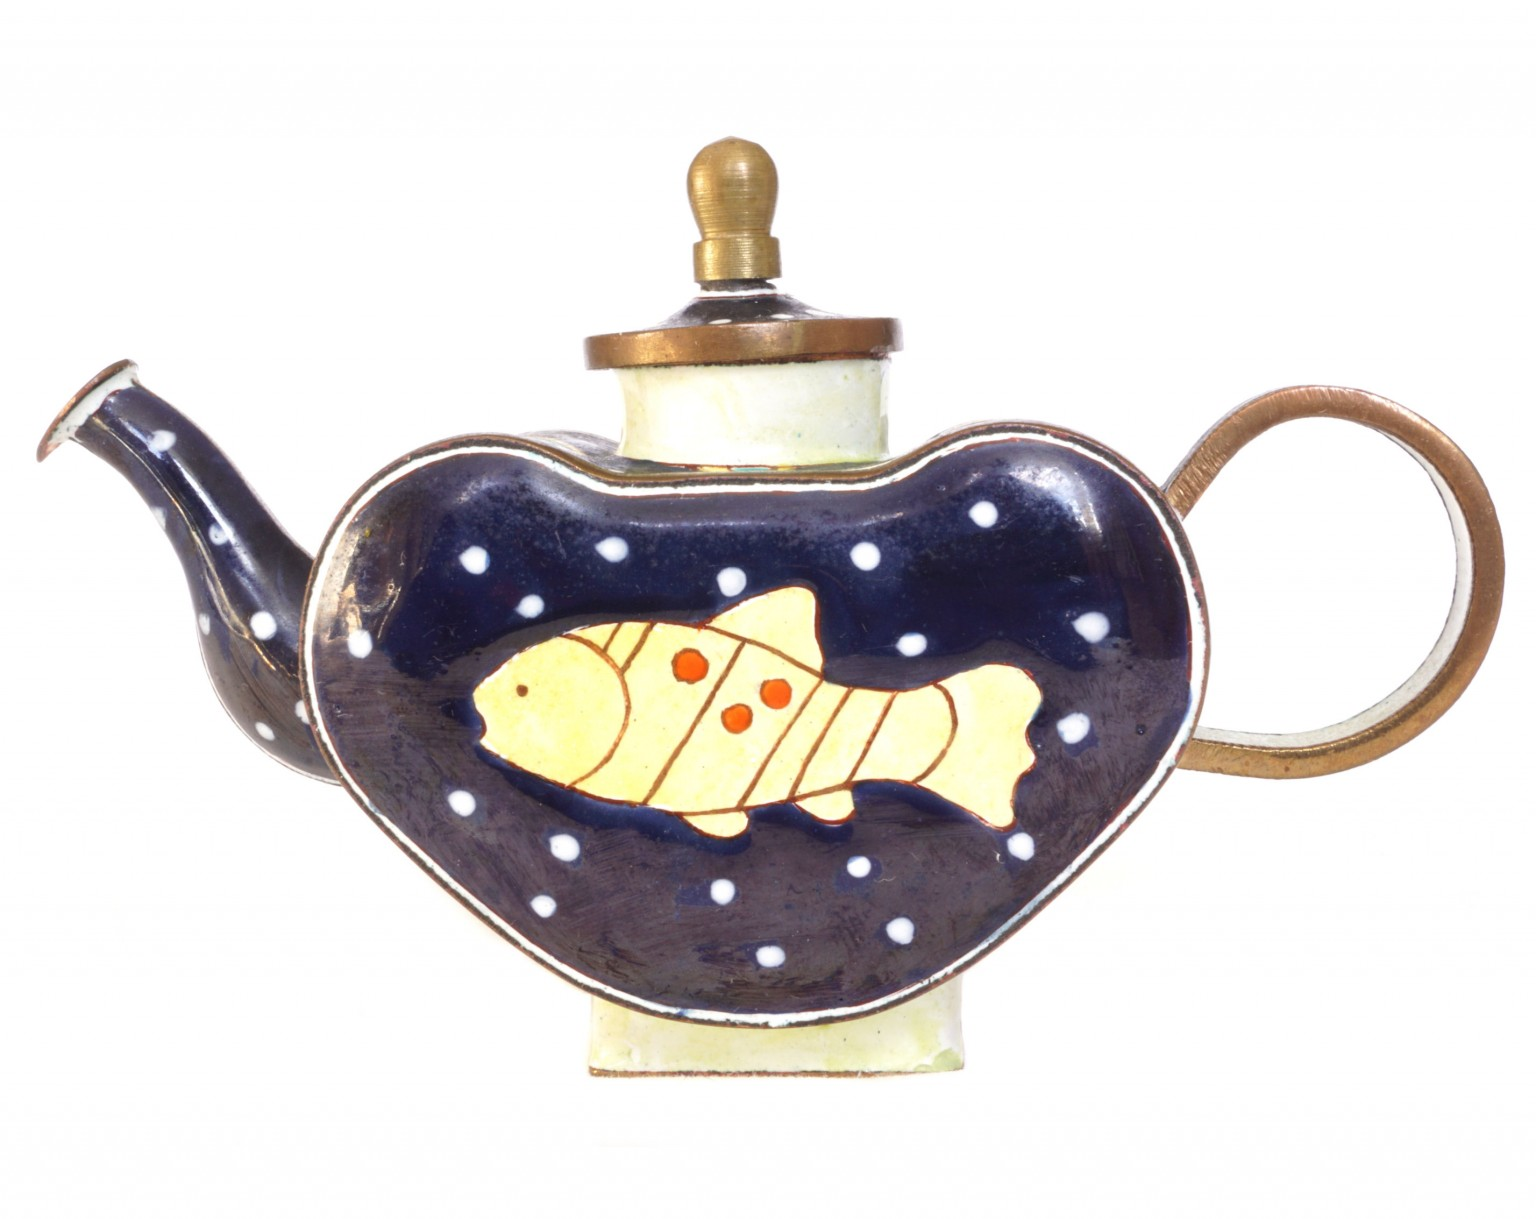 nivag collectables trade plus aid yellow fish yellow fish teapot boxed. Black Bedroom Furniture Sets. Home Design Ideas